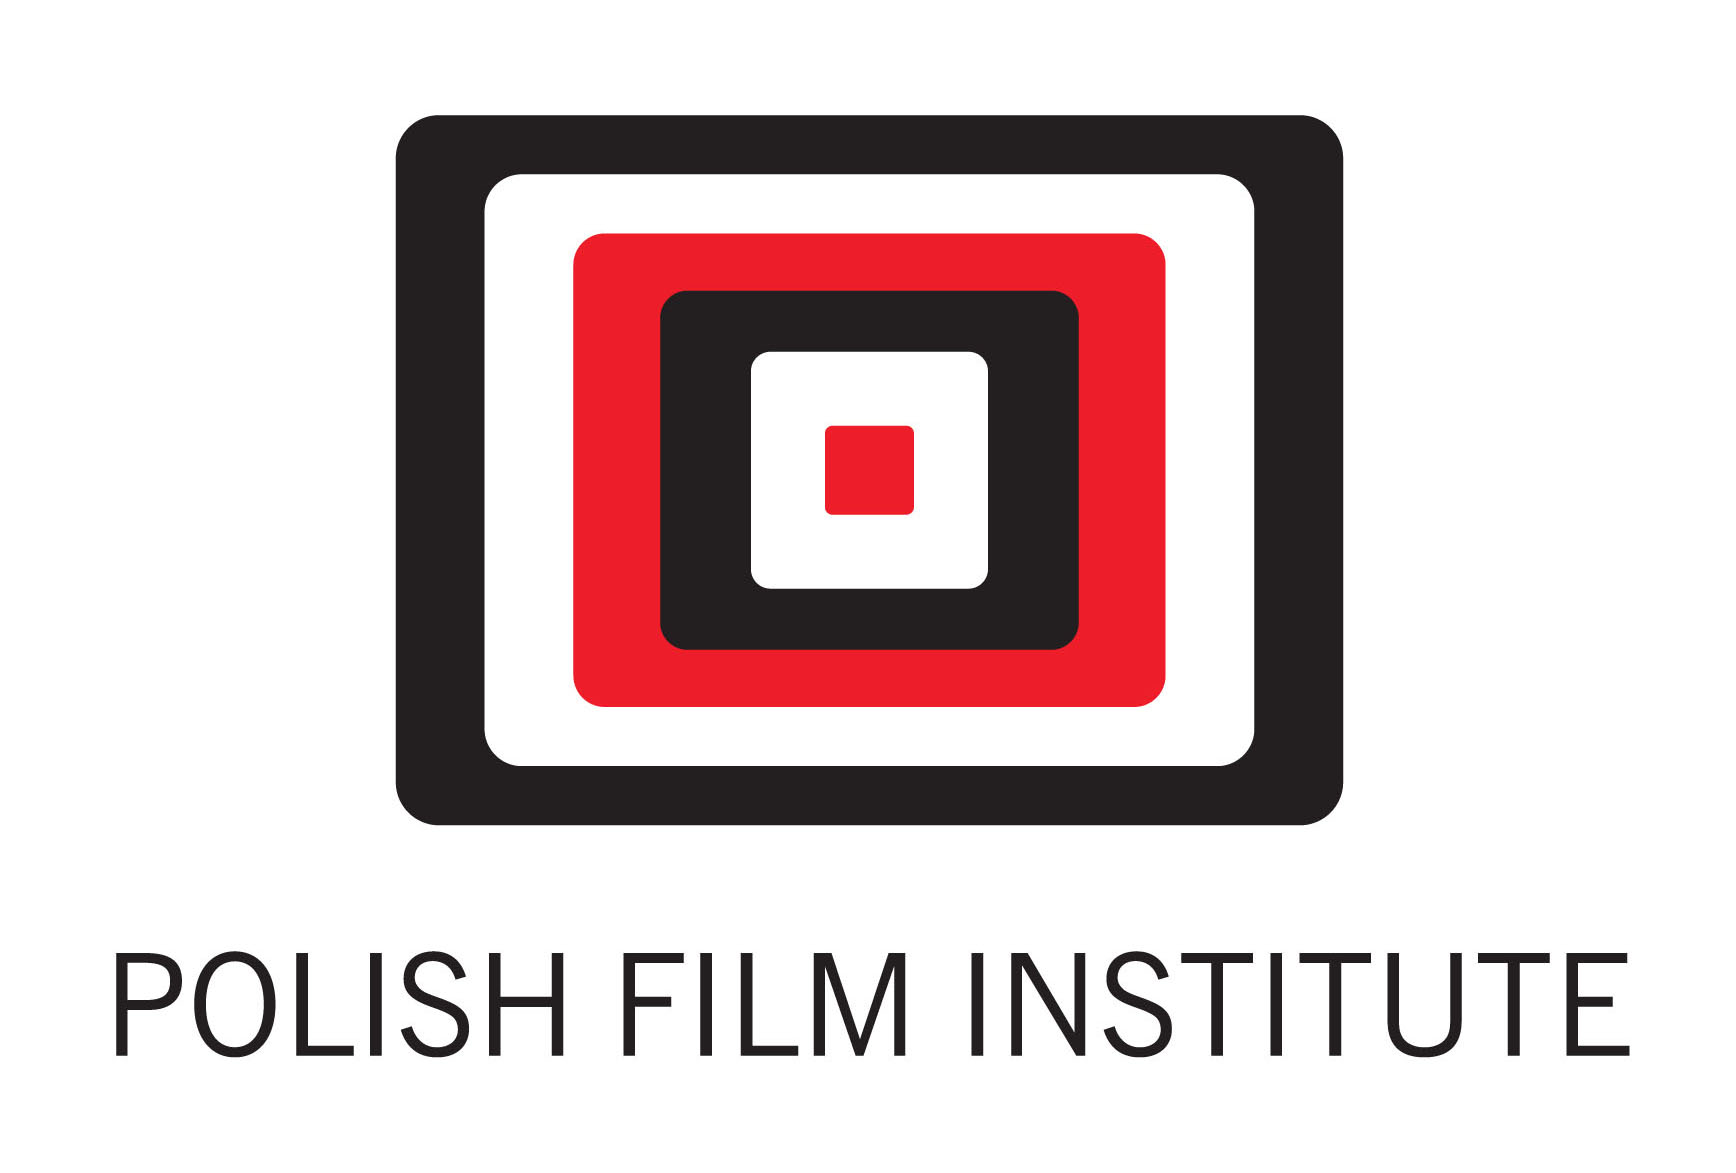 Polish Film Institute Colour.jpg